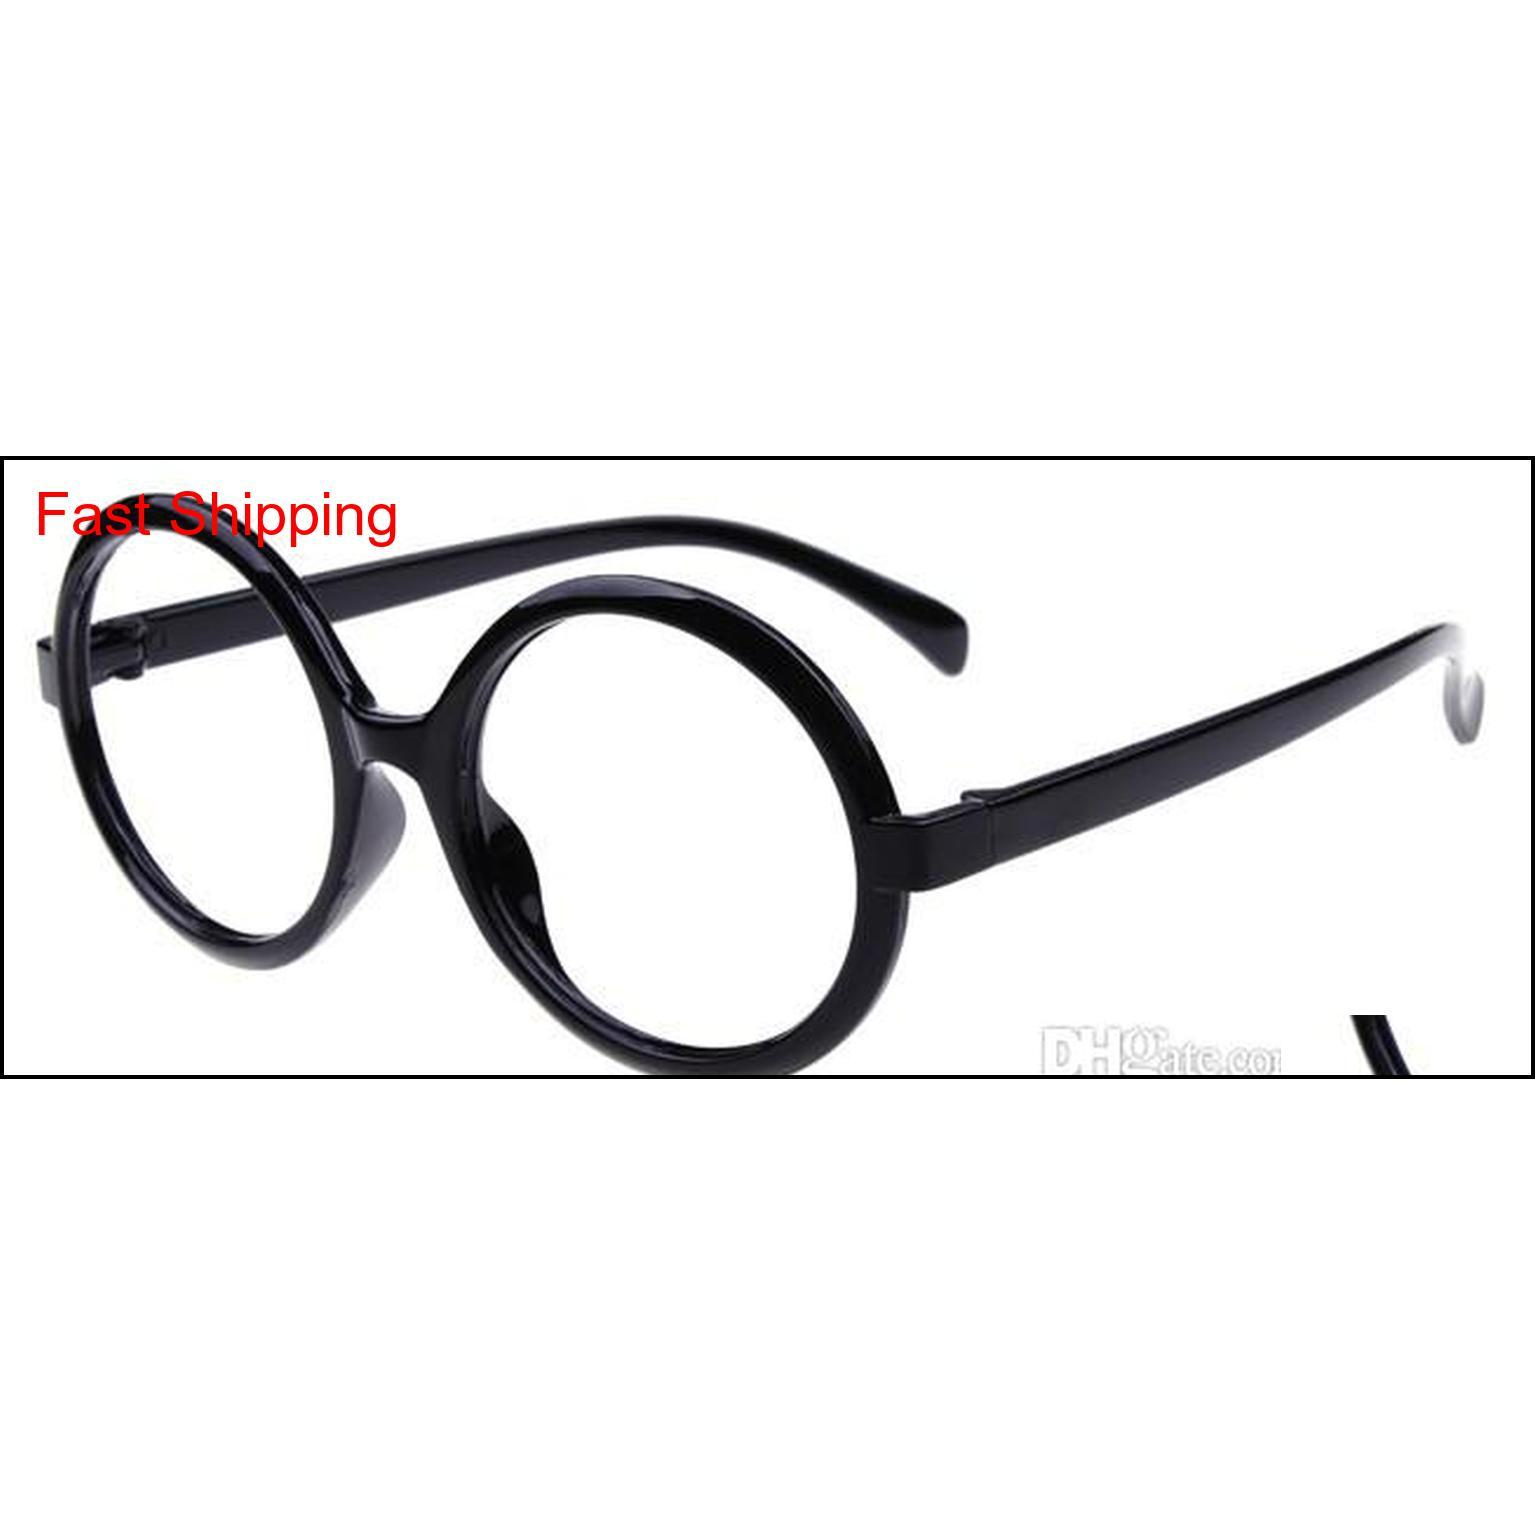 uinsex decorative eye glasses frame for women men harry potter round spectacle frames fashion cheap optical frames wholesale